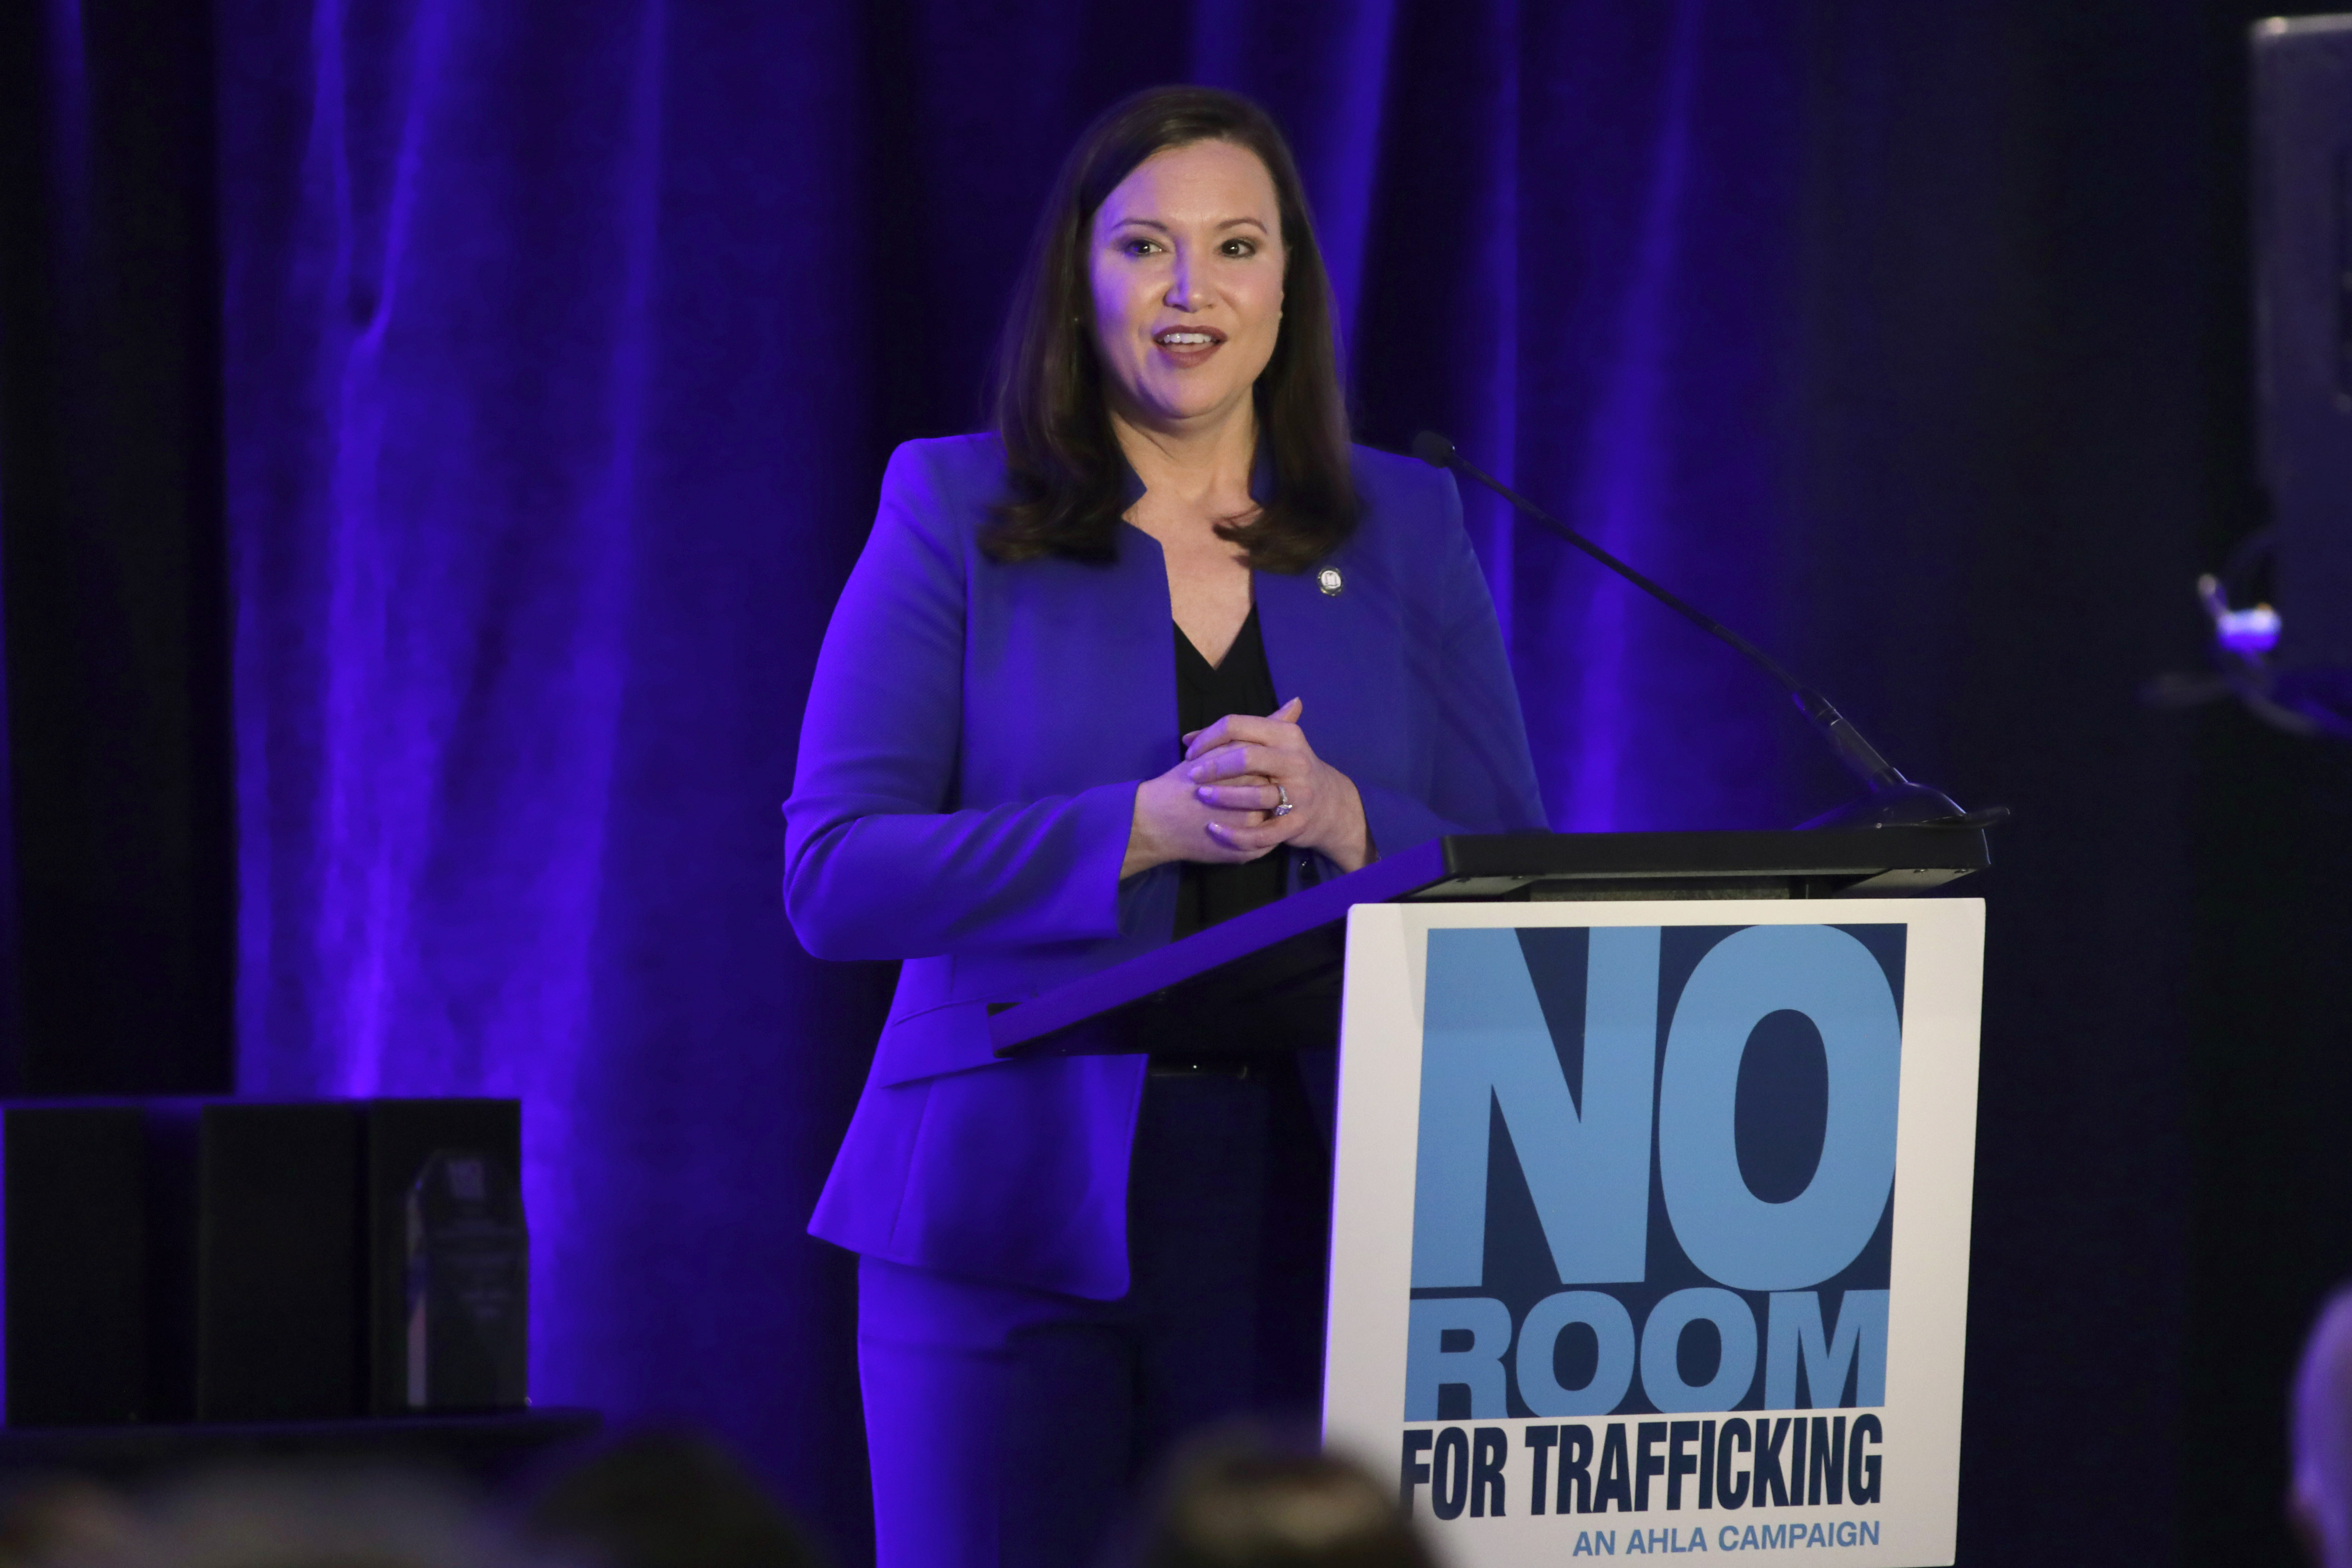 Florida Attorney General Ashley Moody speaks during a meeting between law enforcement officials and hotel groups to announce a campaign to prevent human trafficking surrounding next month's Super Bowl NFL football game in the Miami area, Thursday, Jan. 9, 2020, in Miami Beach, Fla.